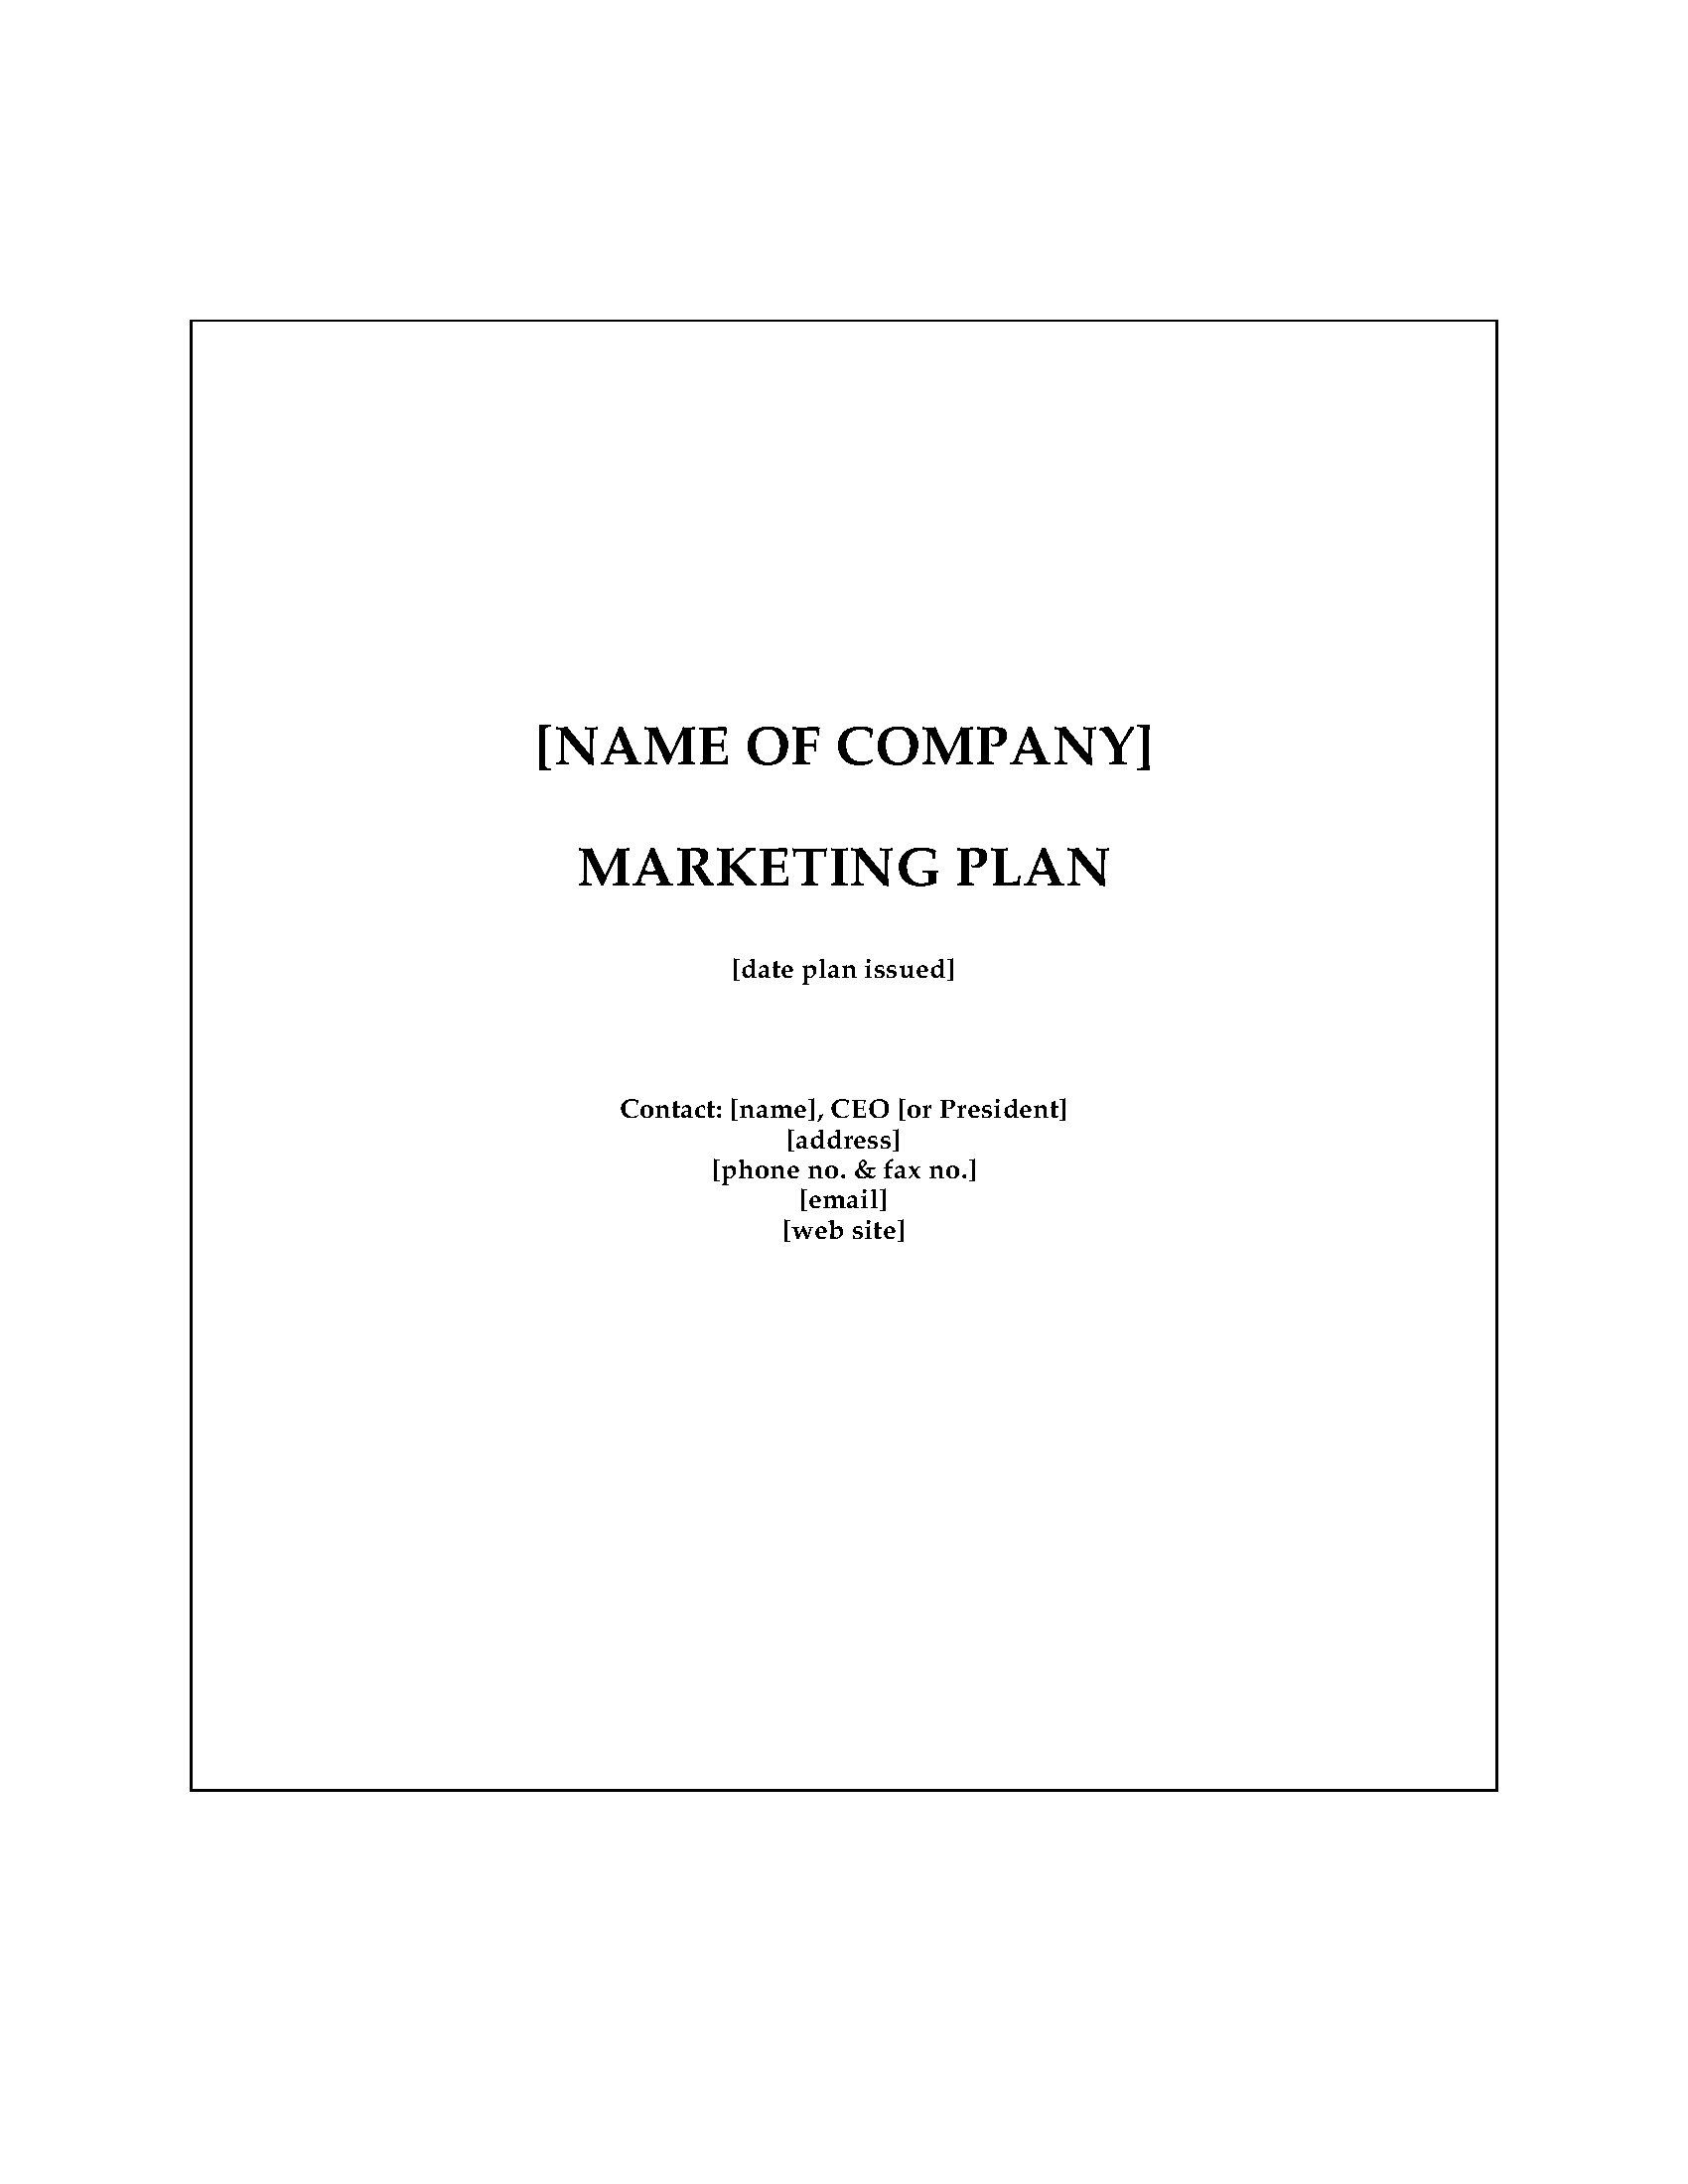 Accounting firm marketing plan legal forms and business templates picture of accounting firm marketing plan wajeb Choice Image